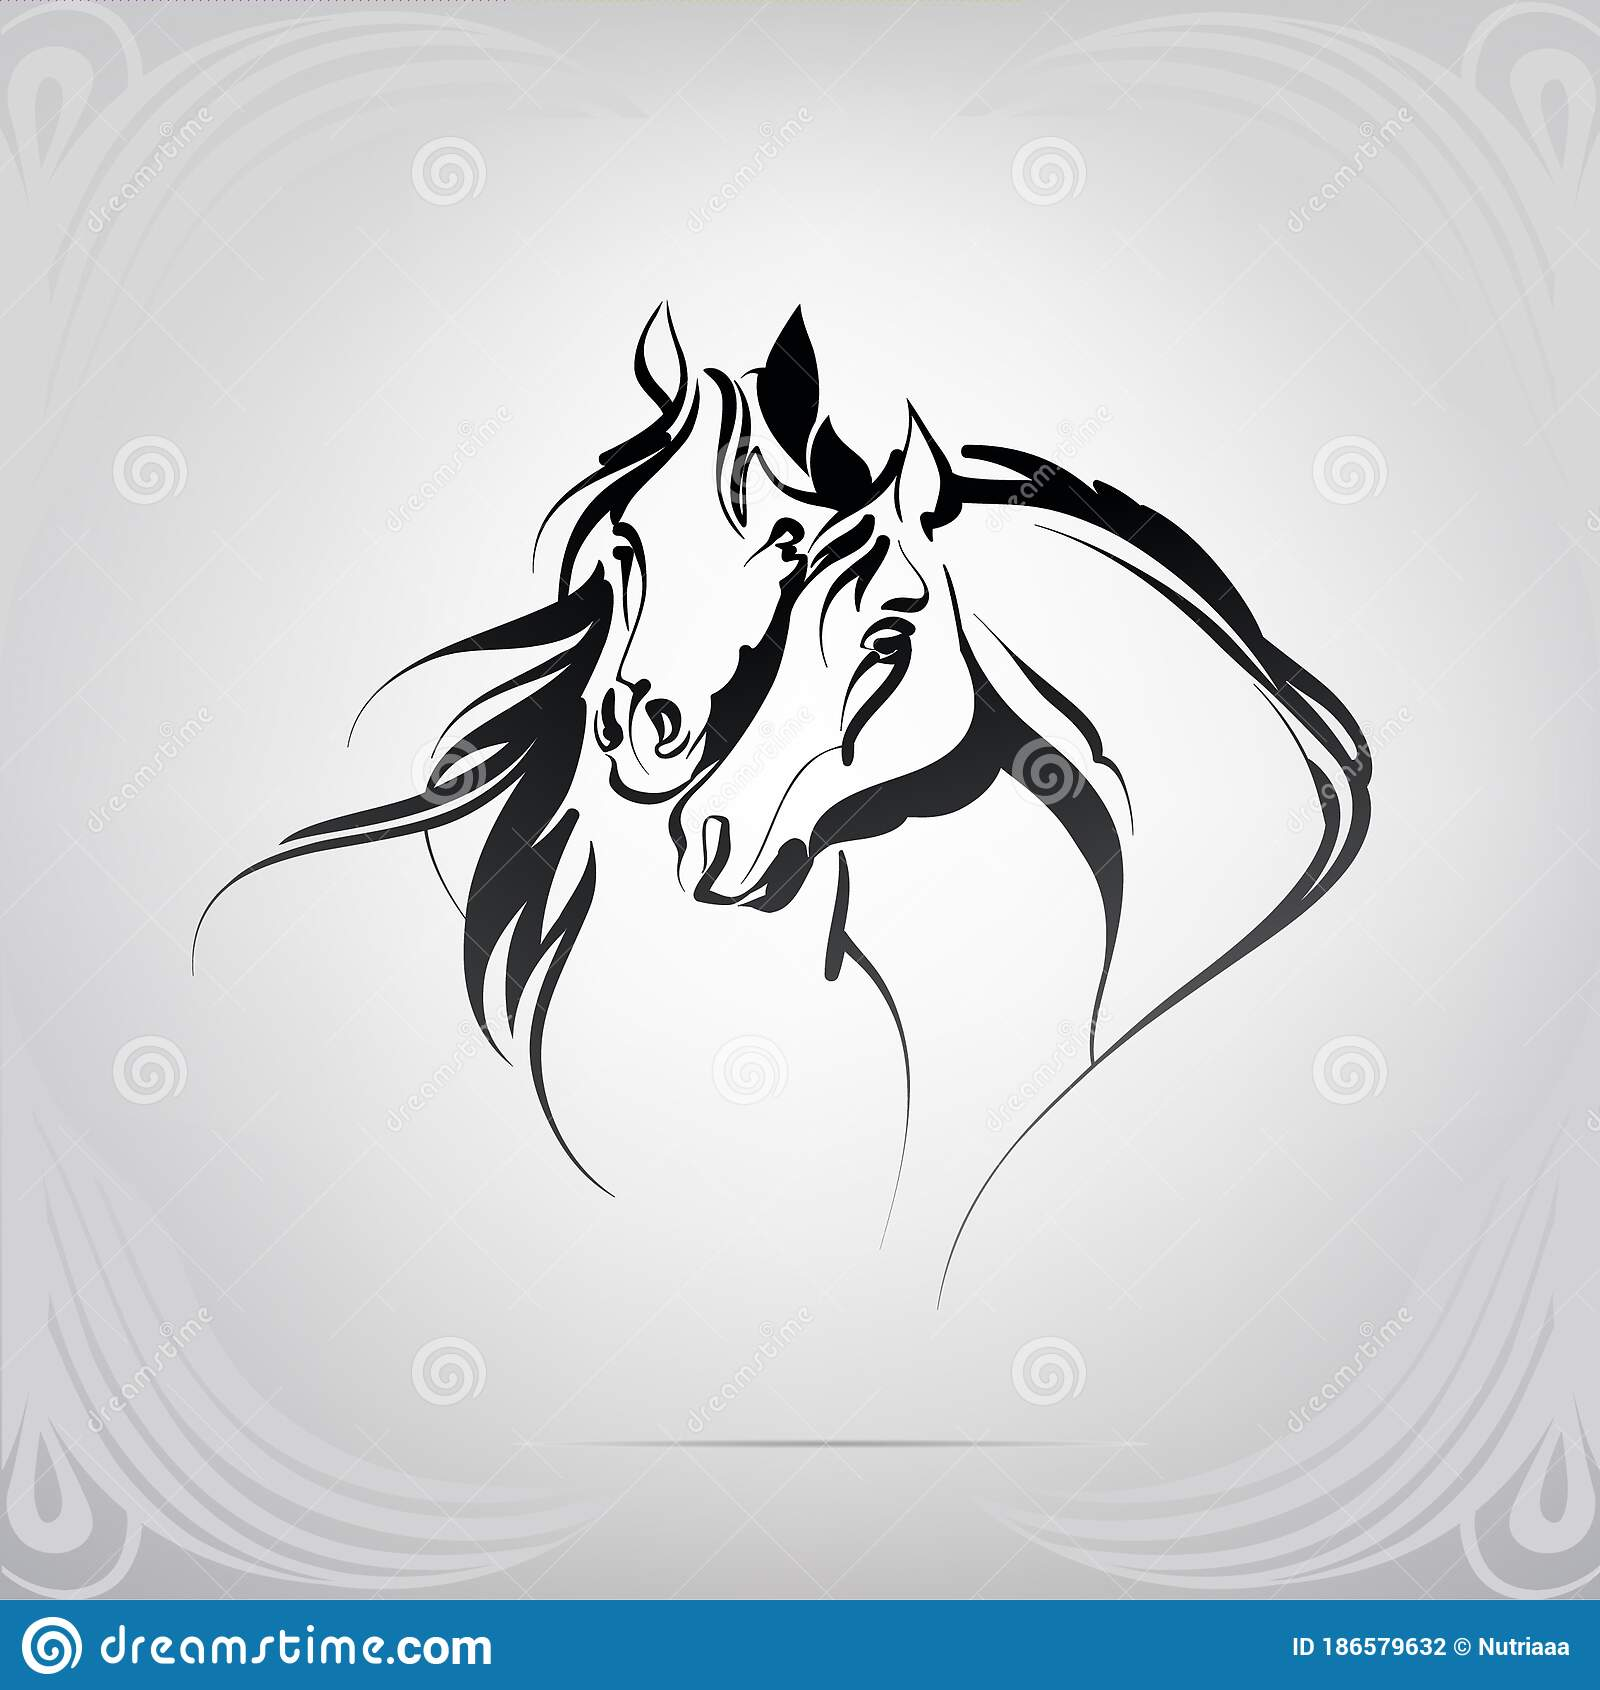 Vector Silhouette Of Two Horses Vector Illustration Stock Illustration Illustration Of Tattoo Sport 186579632